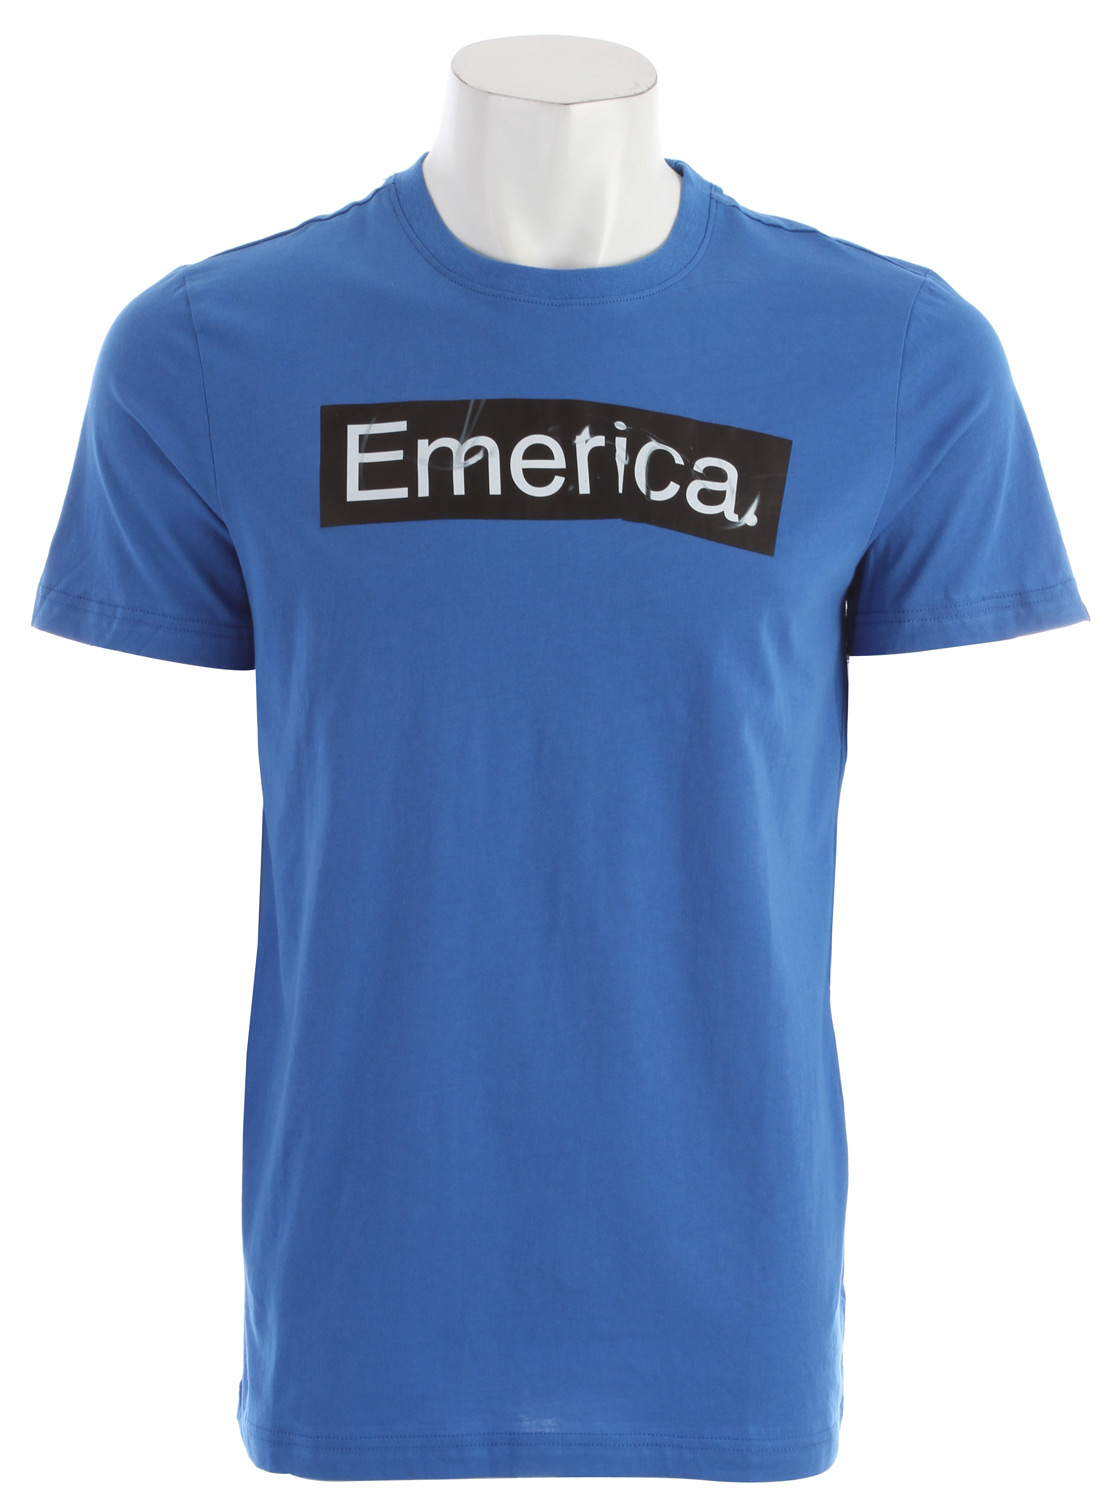 Short sleeve T-Shirt with screen print - $14.95